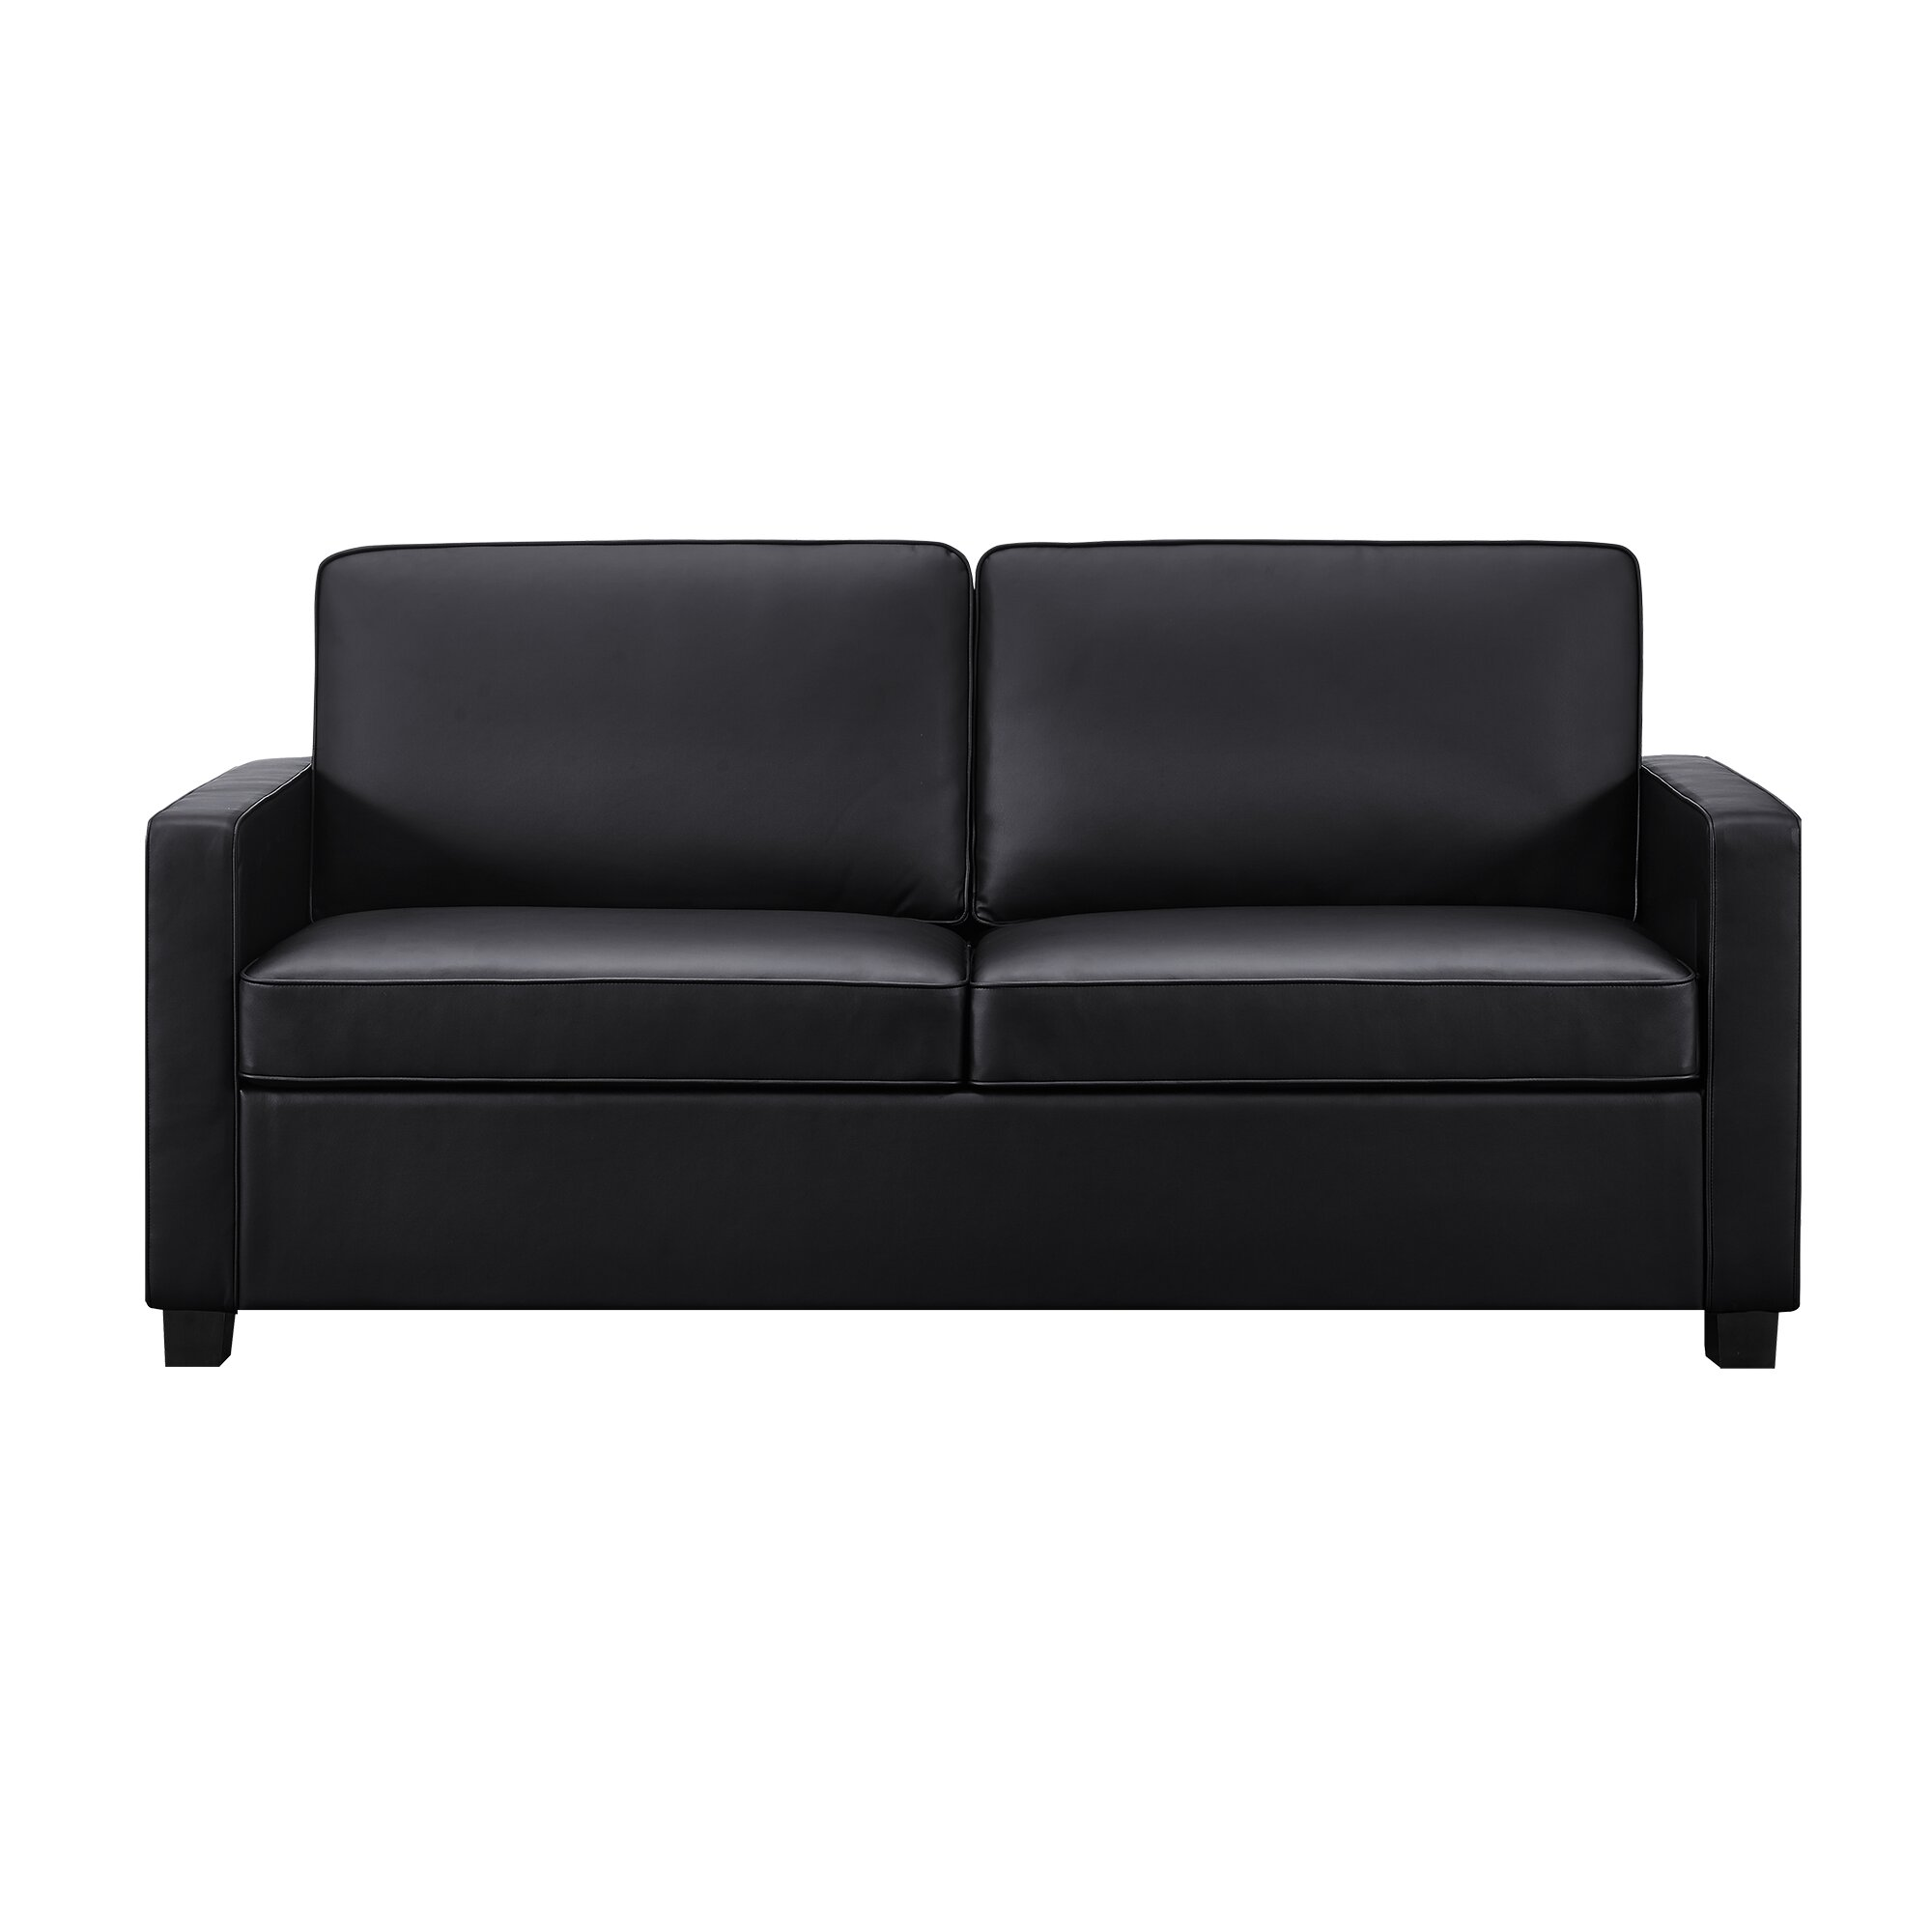 Leather Twin Sofa Sleeper Savvy Boulder In